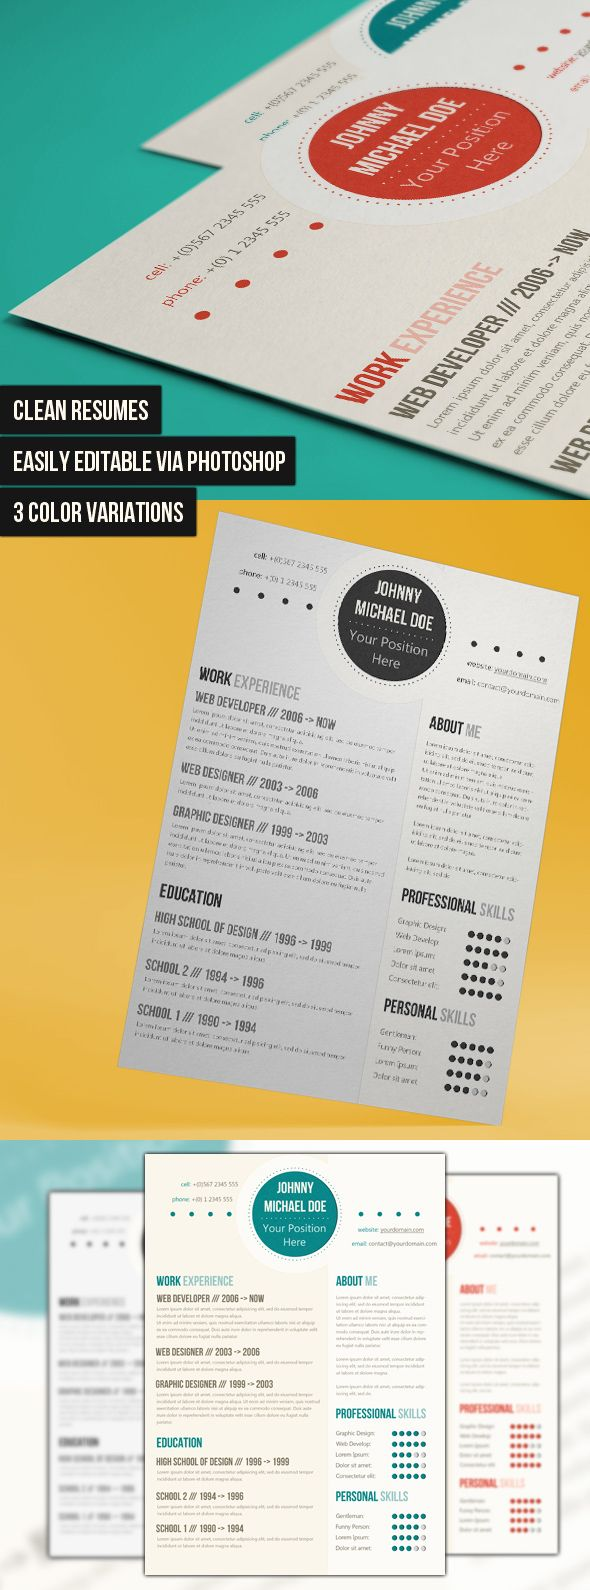 Simple And Clean Resume by codegrape.deviantart.com on @deviantART